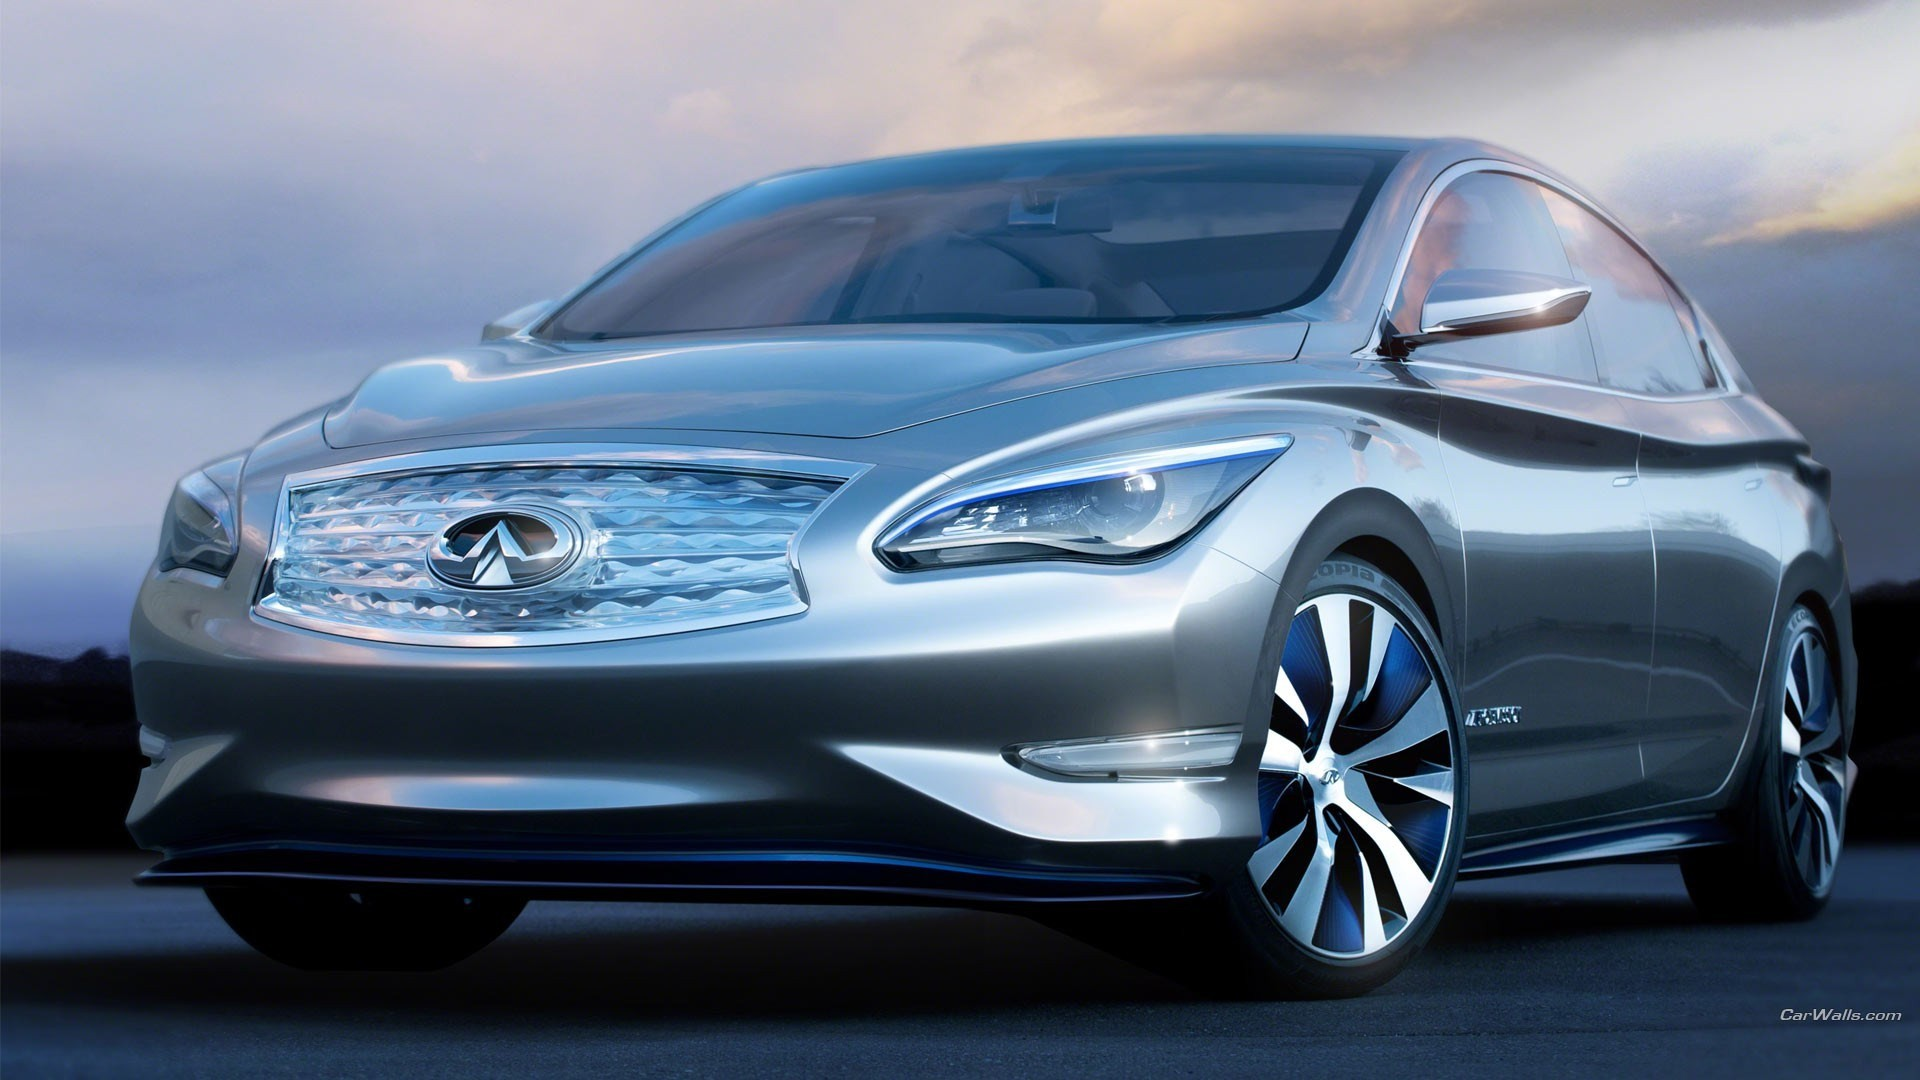 #1648246, infiniti le category – Widescreen Wallpapers: infiniti le  backround